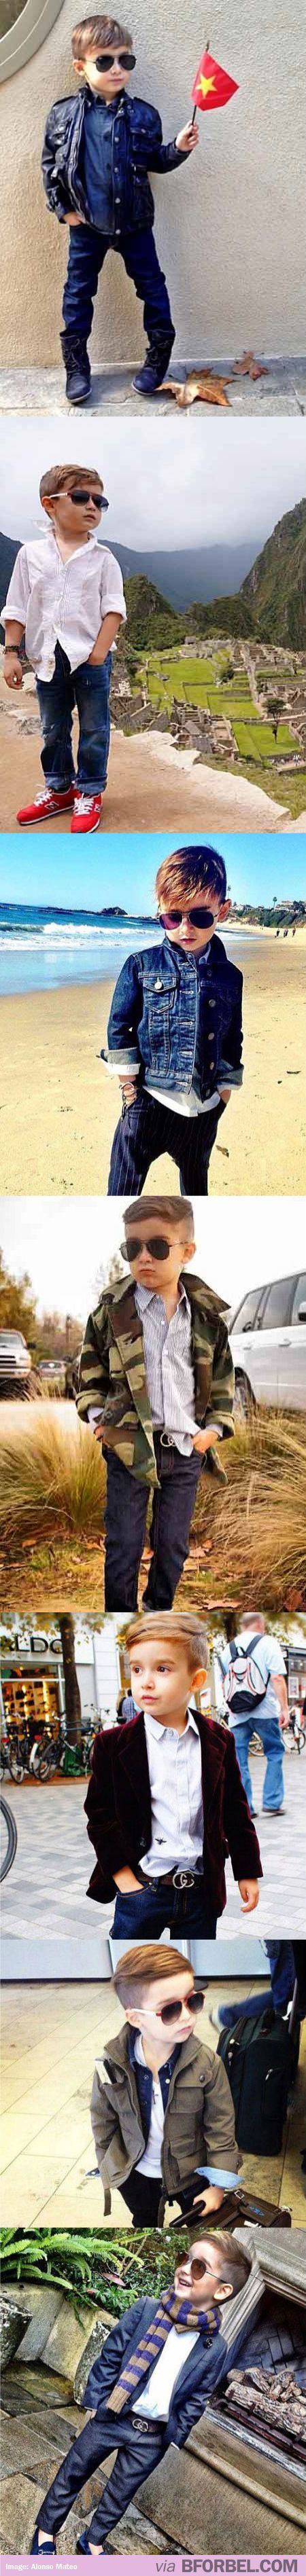 The most stylish little boy to ever walk this earth. Kid's got swag.